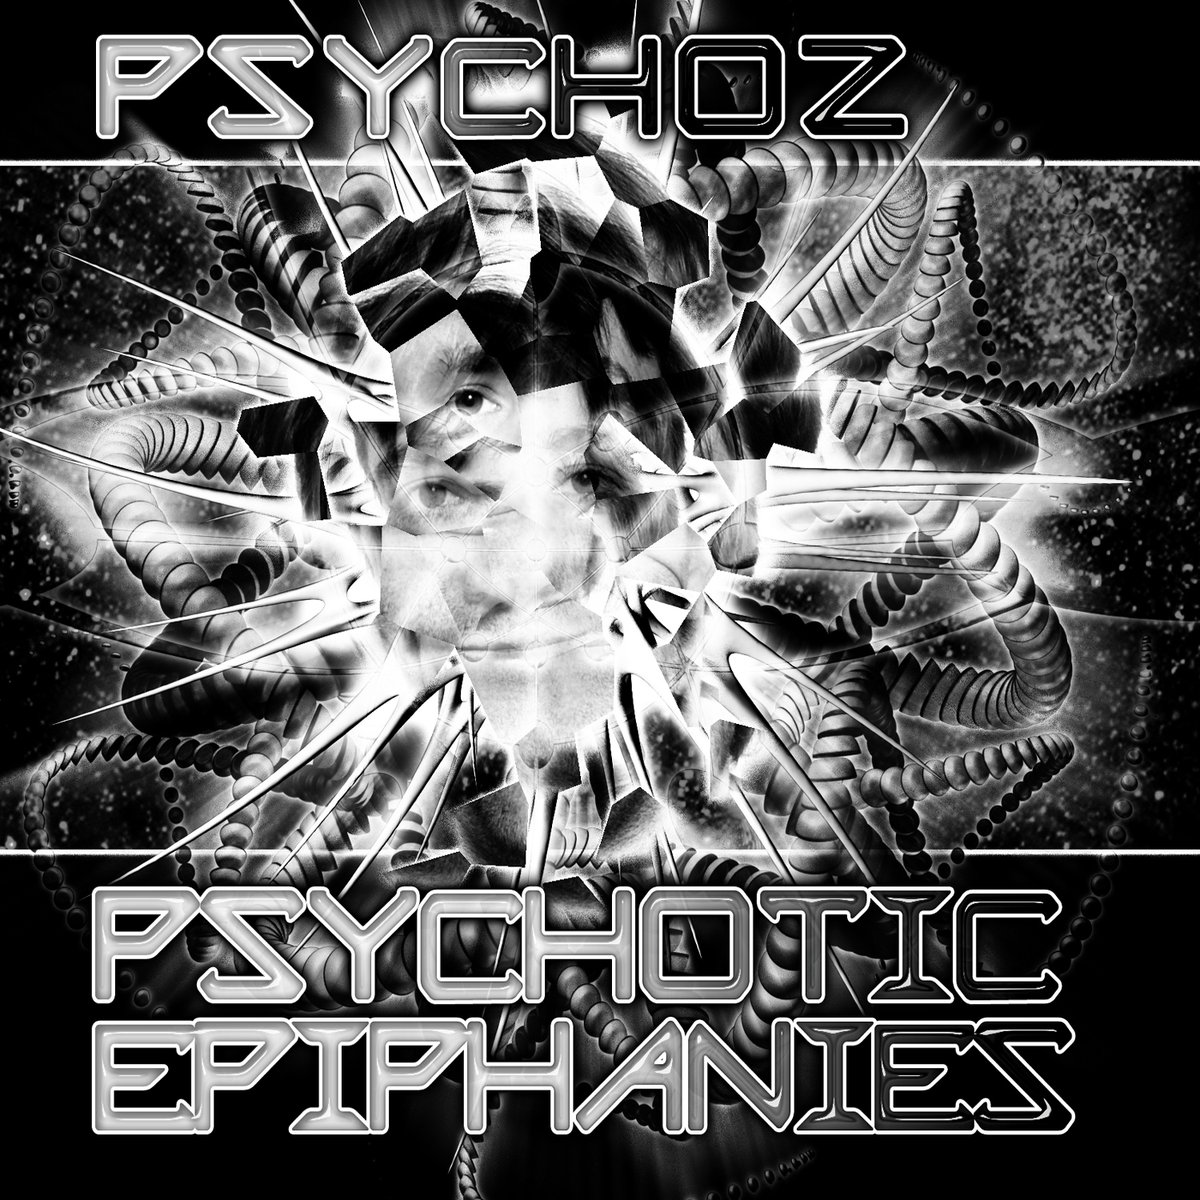 Psychoz - Unchosen Path @ 'Psychotic Epiphanies' album (electronic, goa)